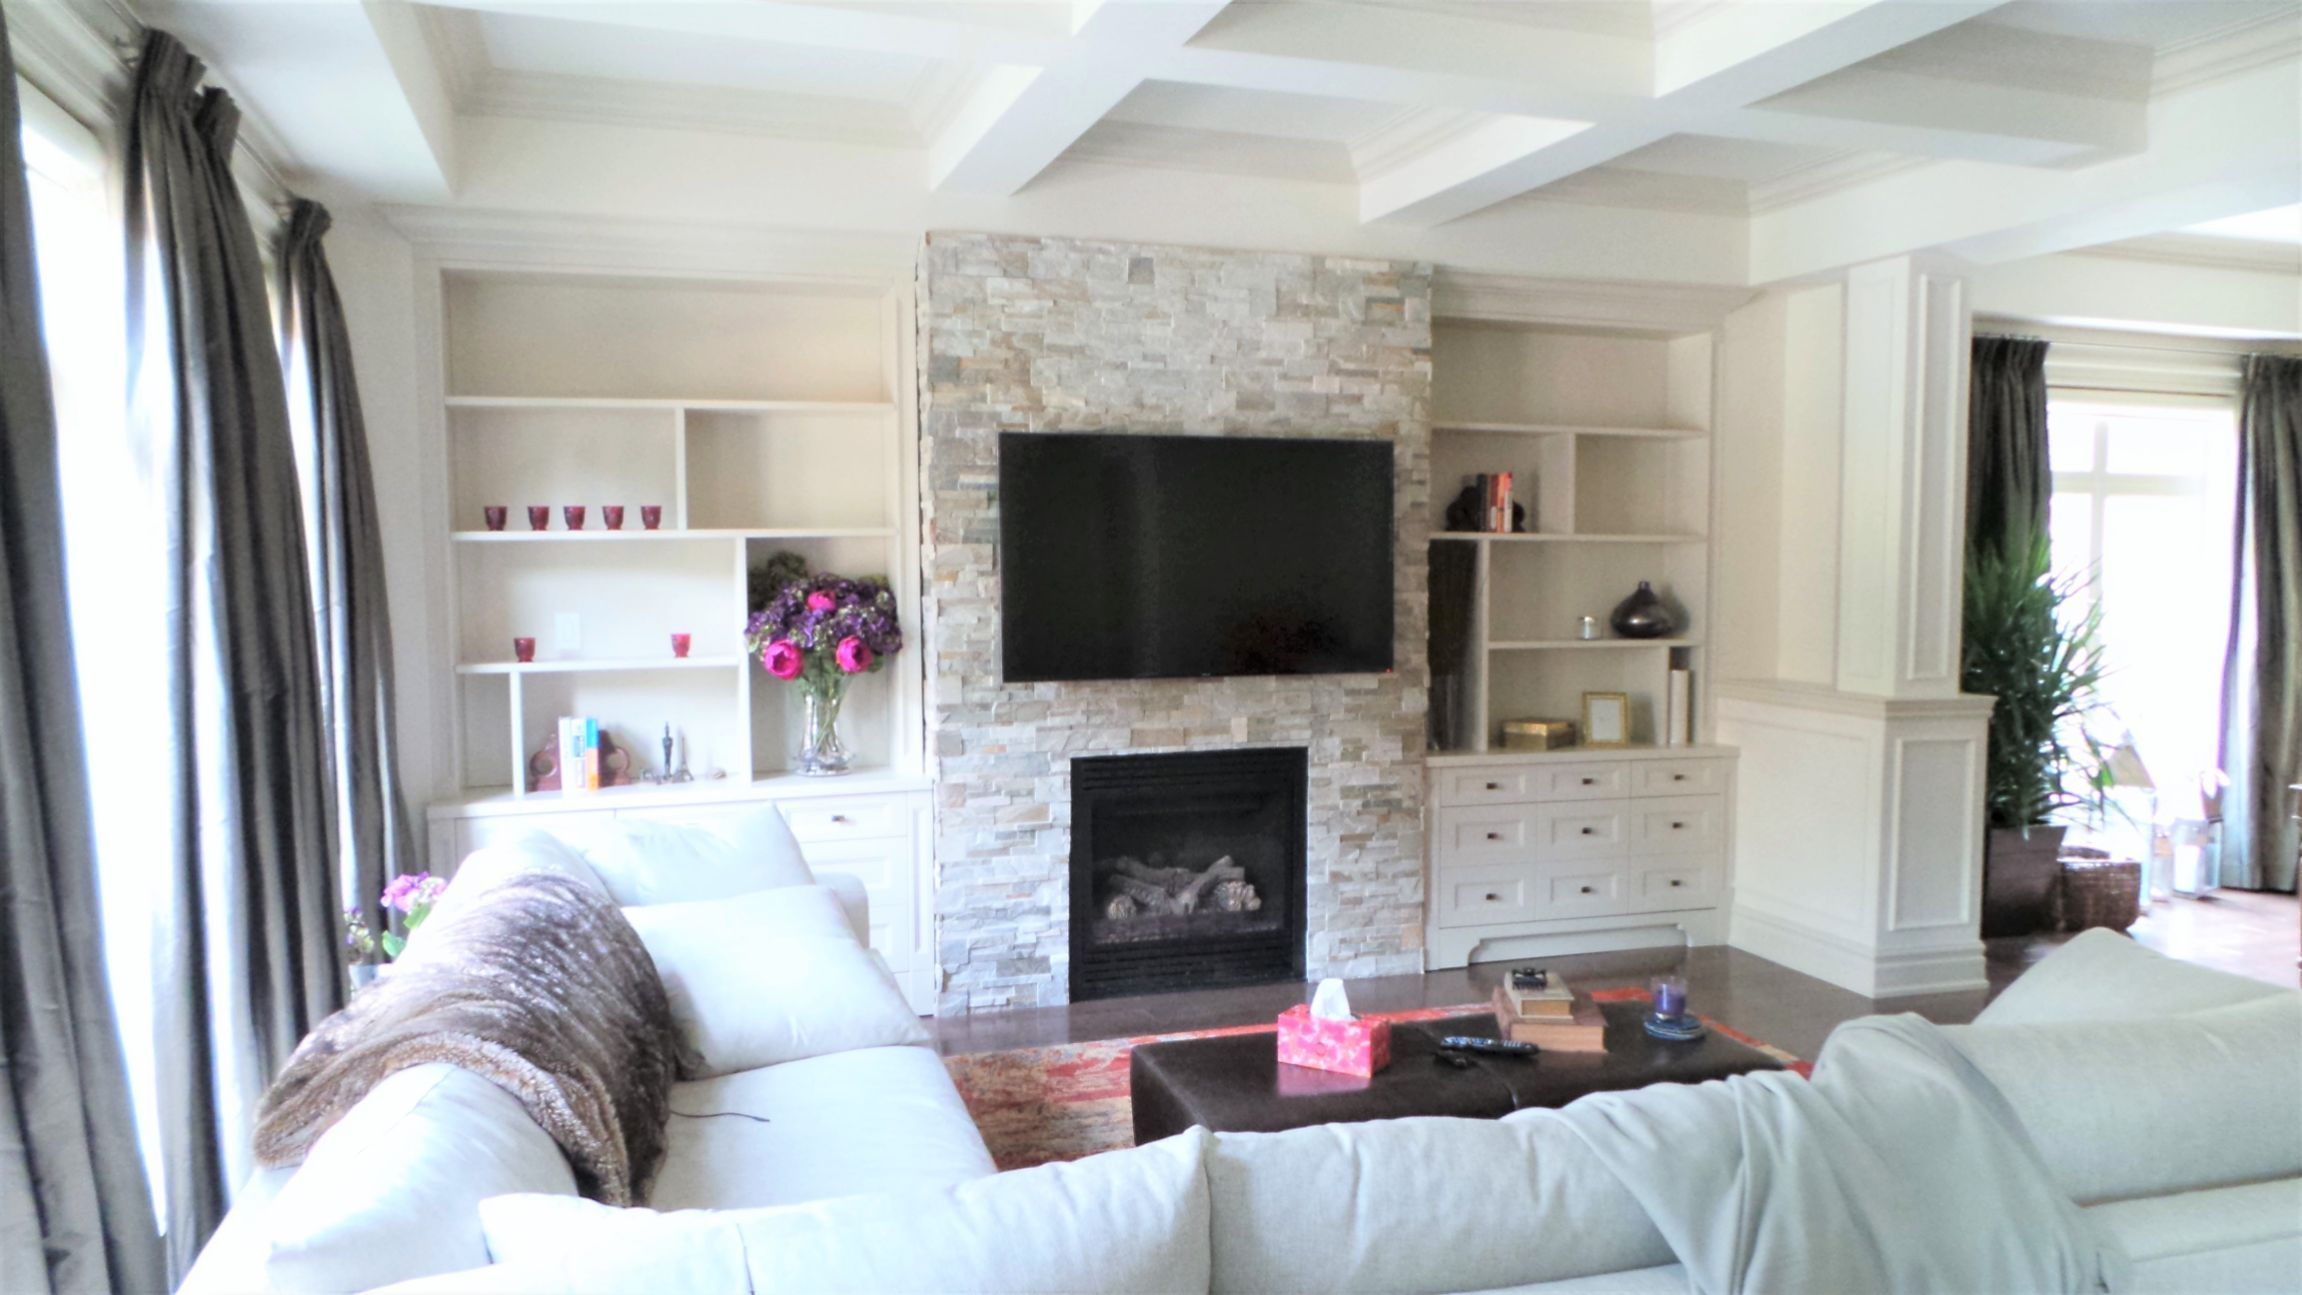 Living room with a fireplace and a TV